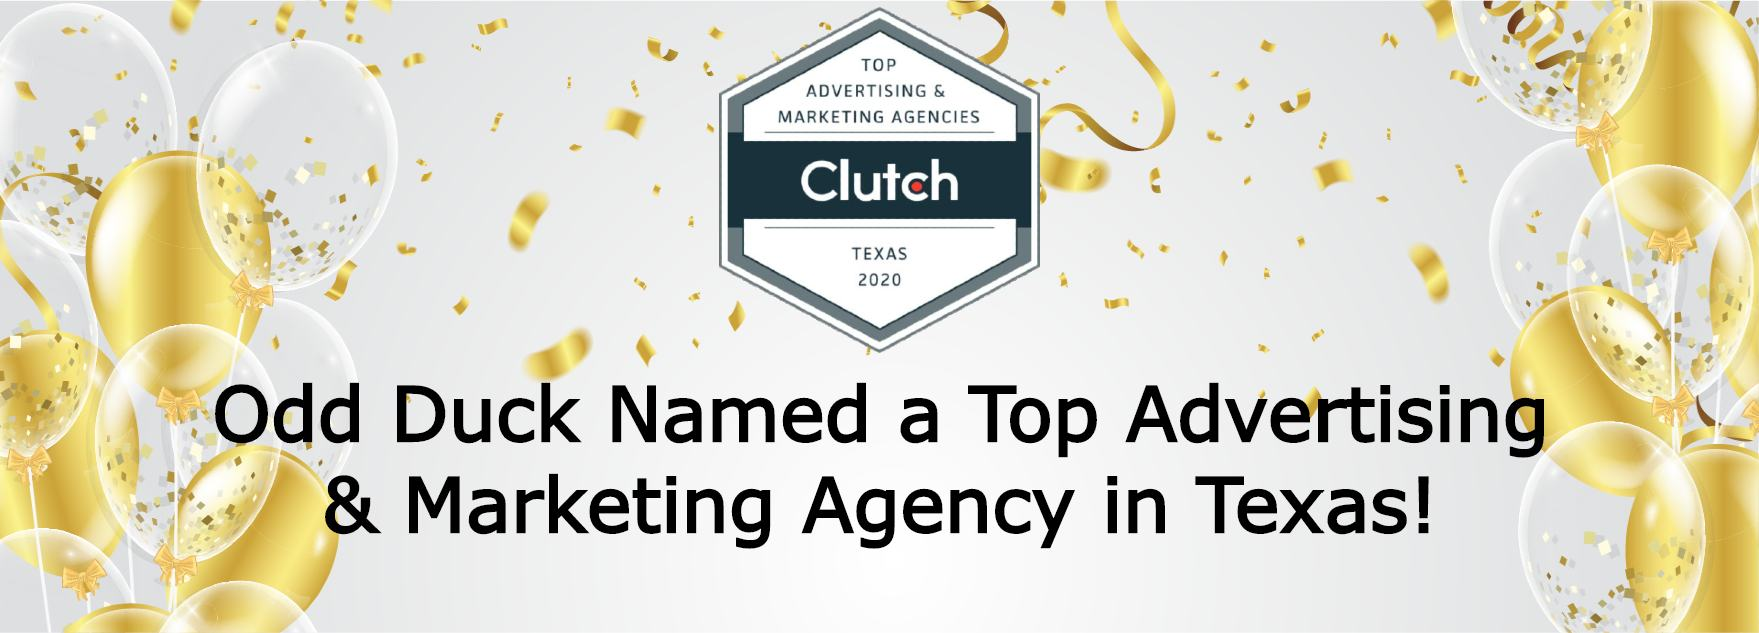 top marketing agencies texas san antonio odd duck media SEO